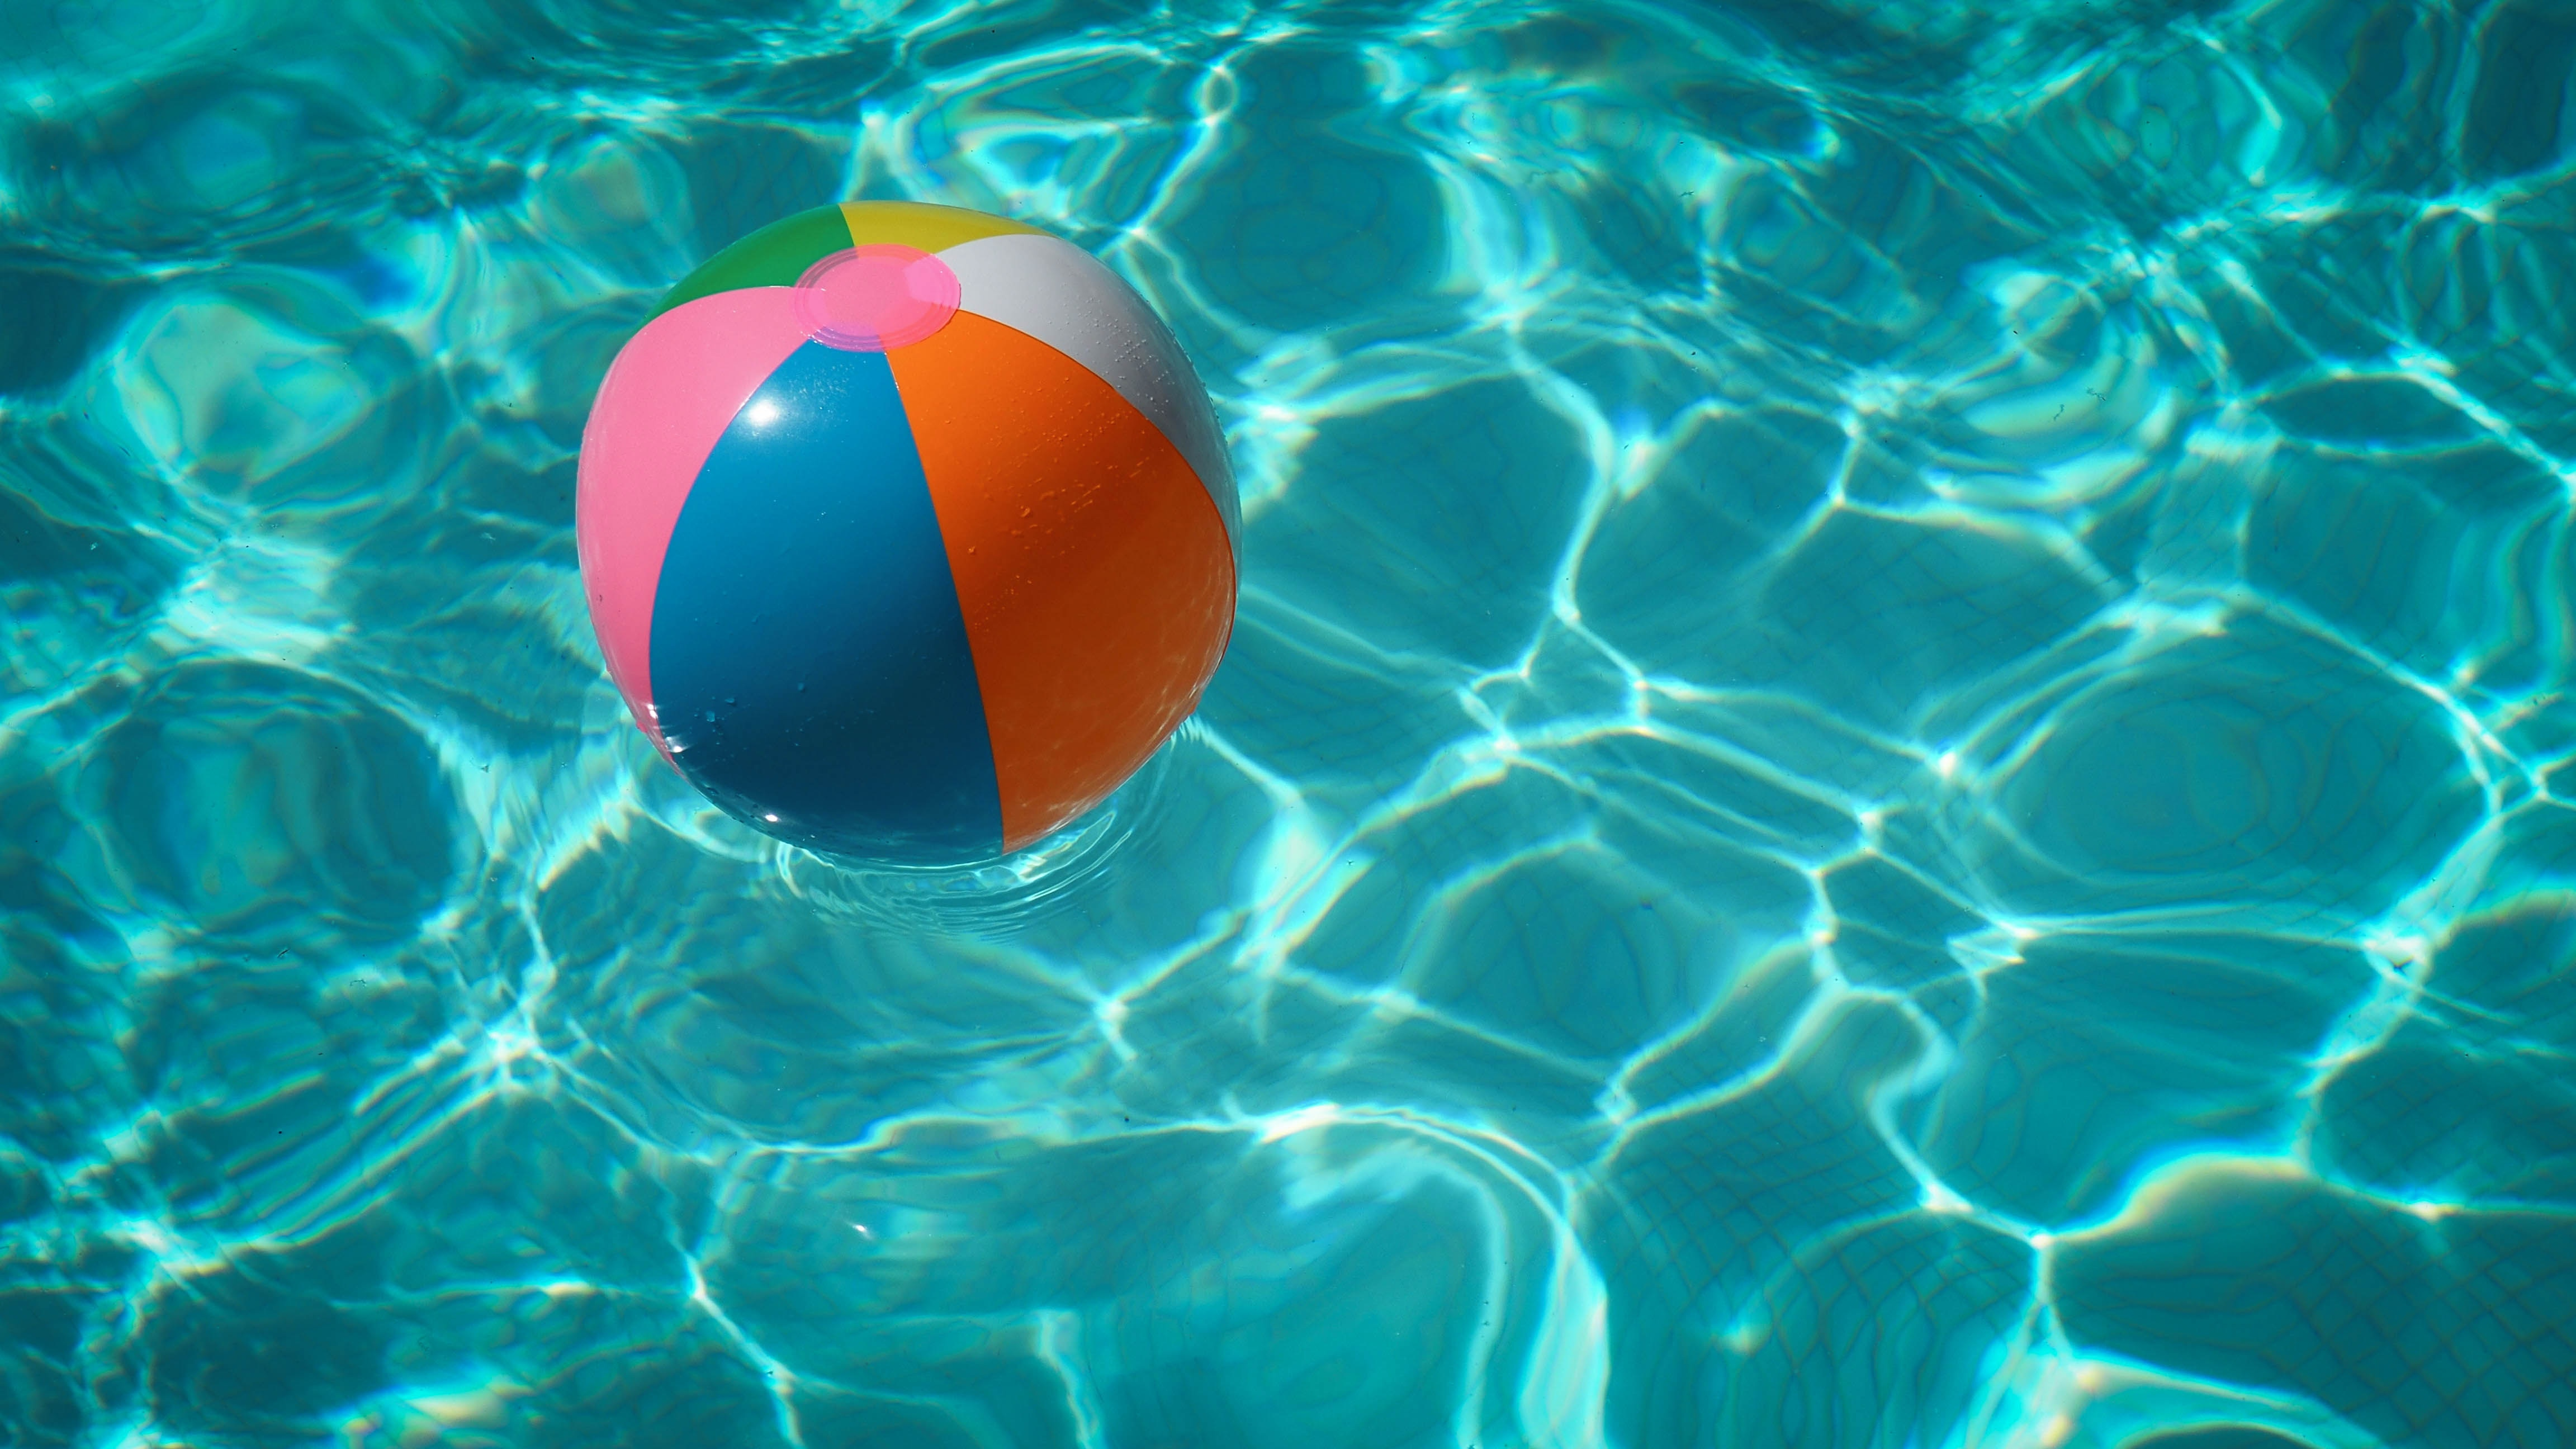 Beach ball floating in a pool